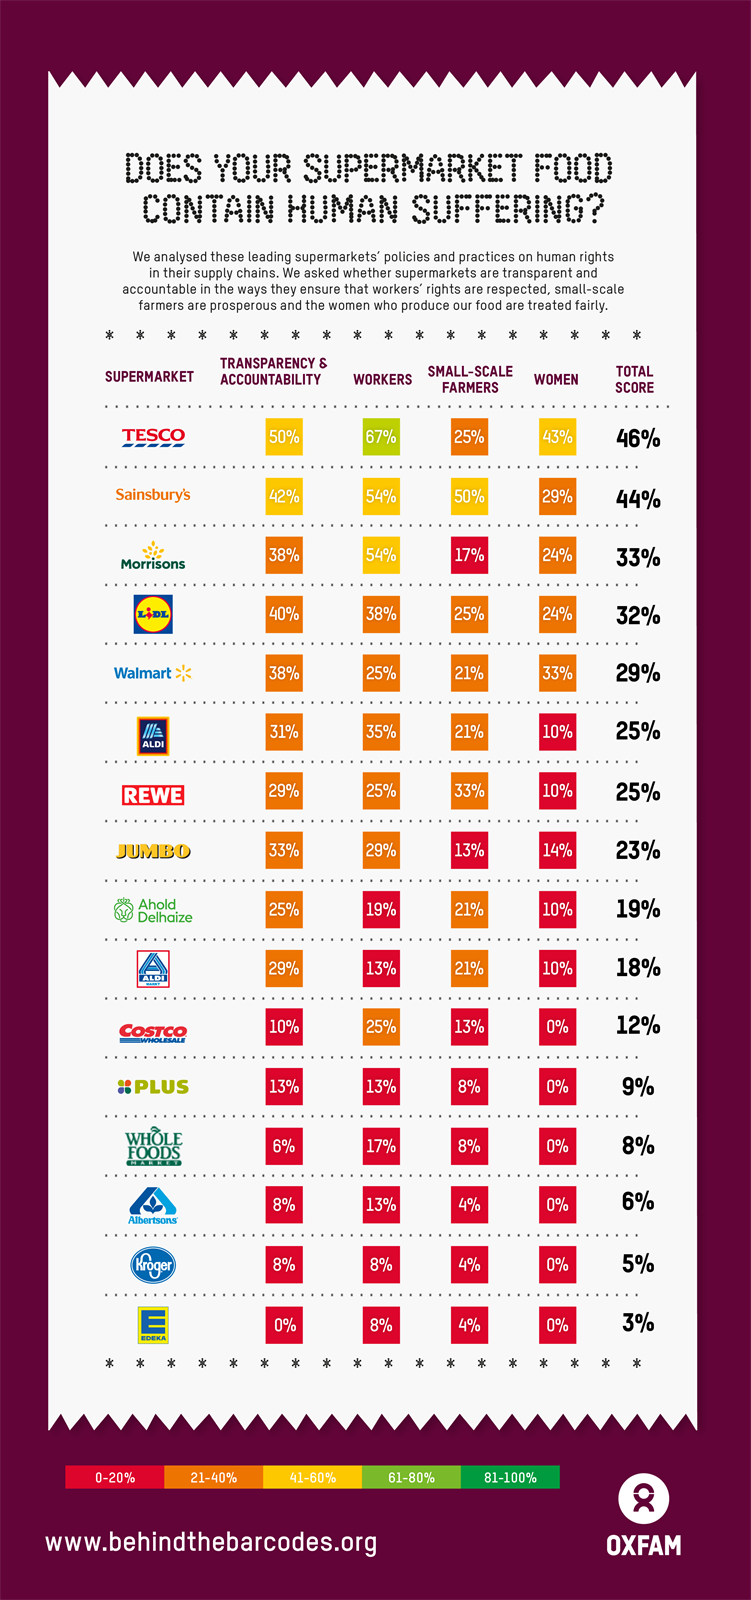 Behind the Barcodes INTL Oxfam Supermarket Scorecard 2020.png